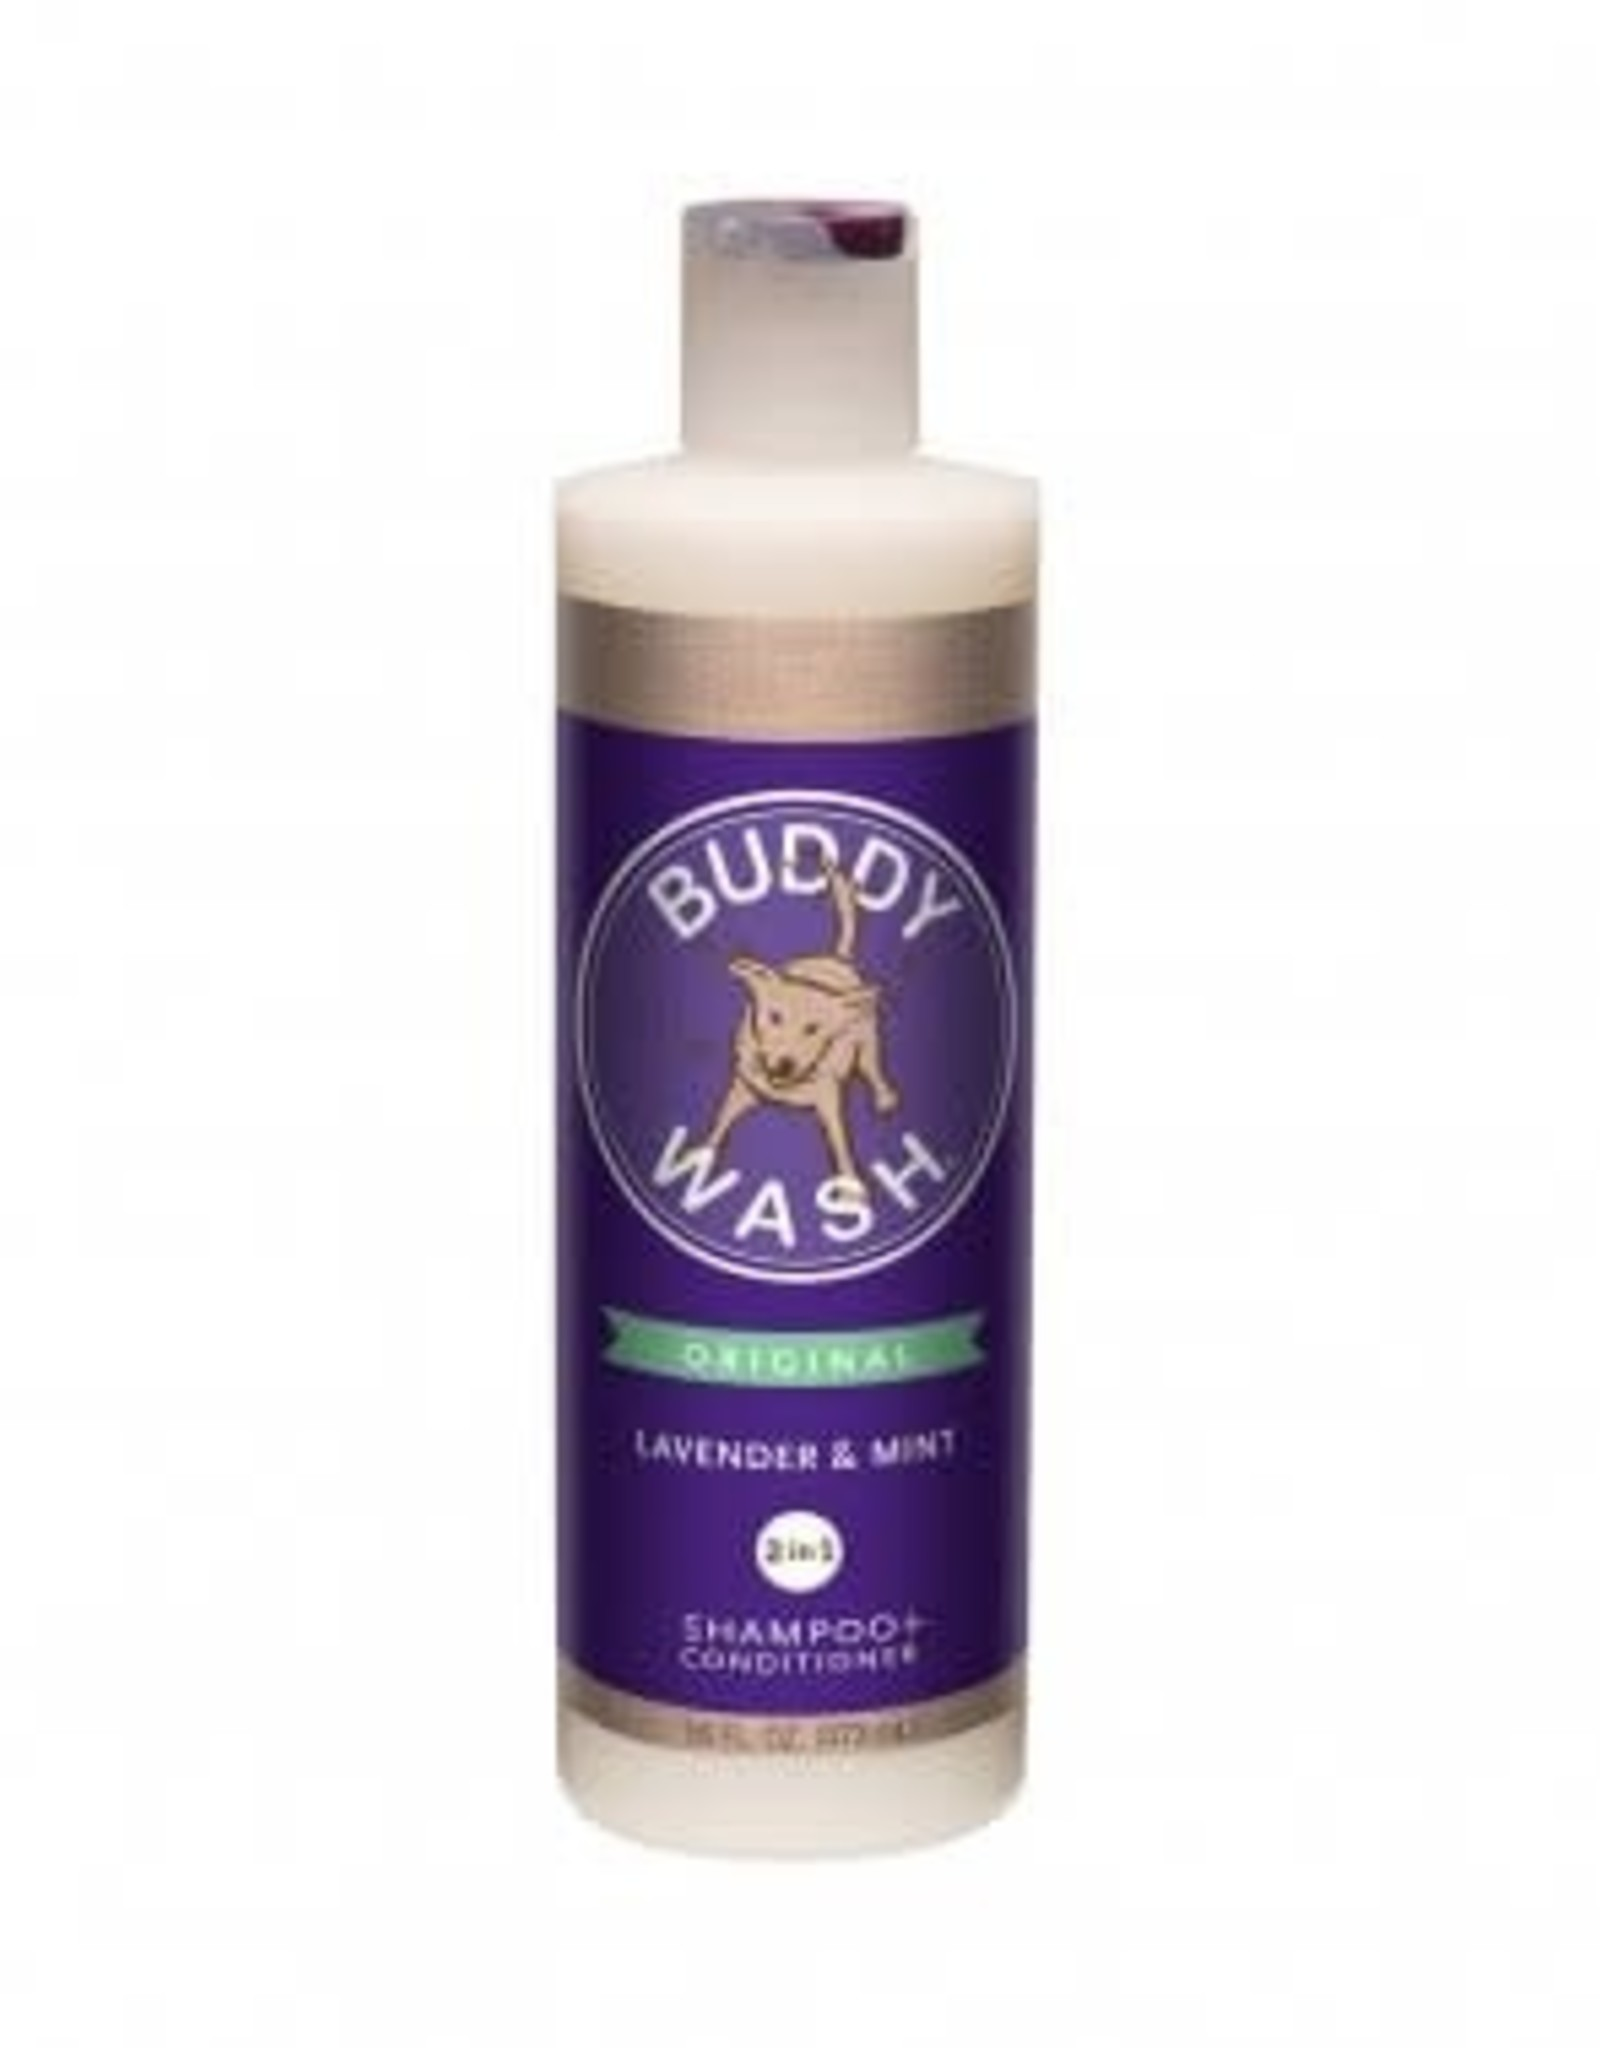 Buddy Wash 2 in 1 Lavender Mint 16oz